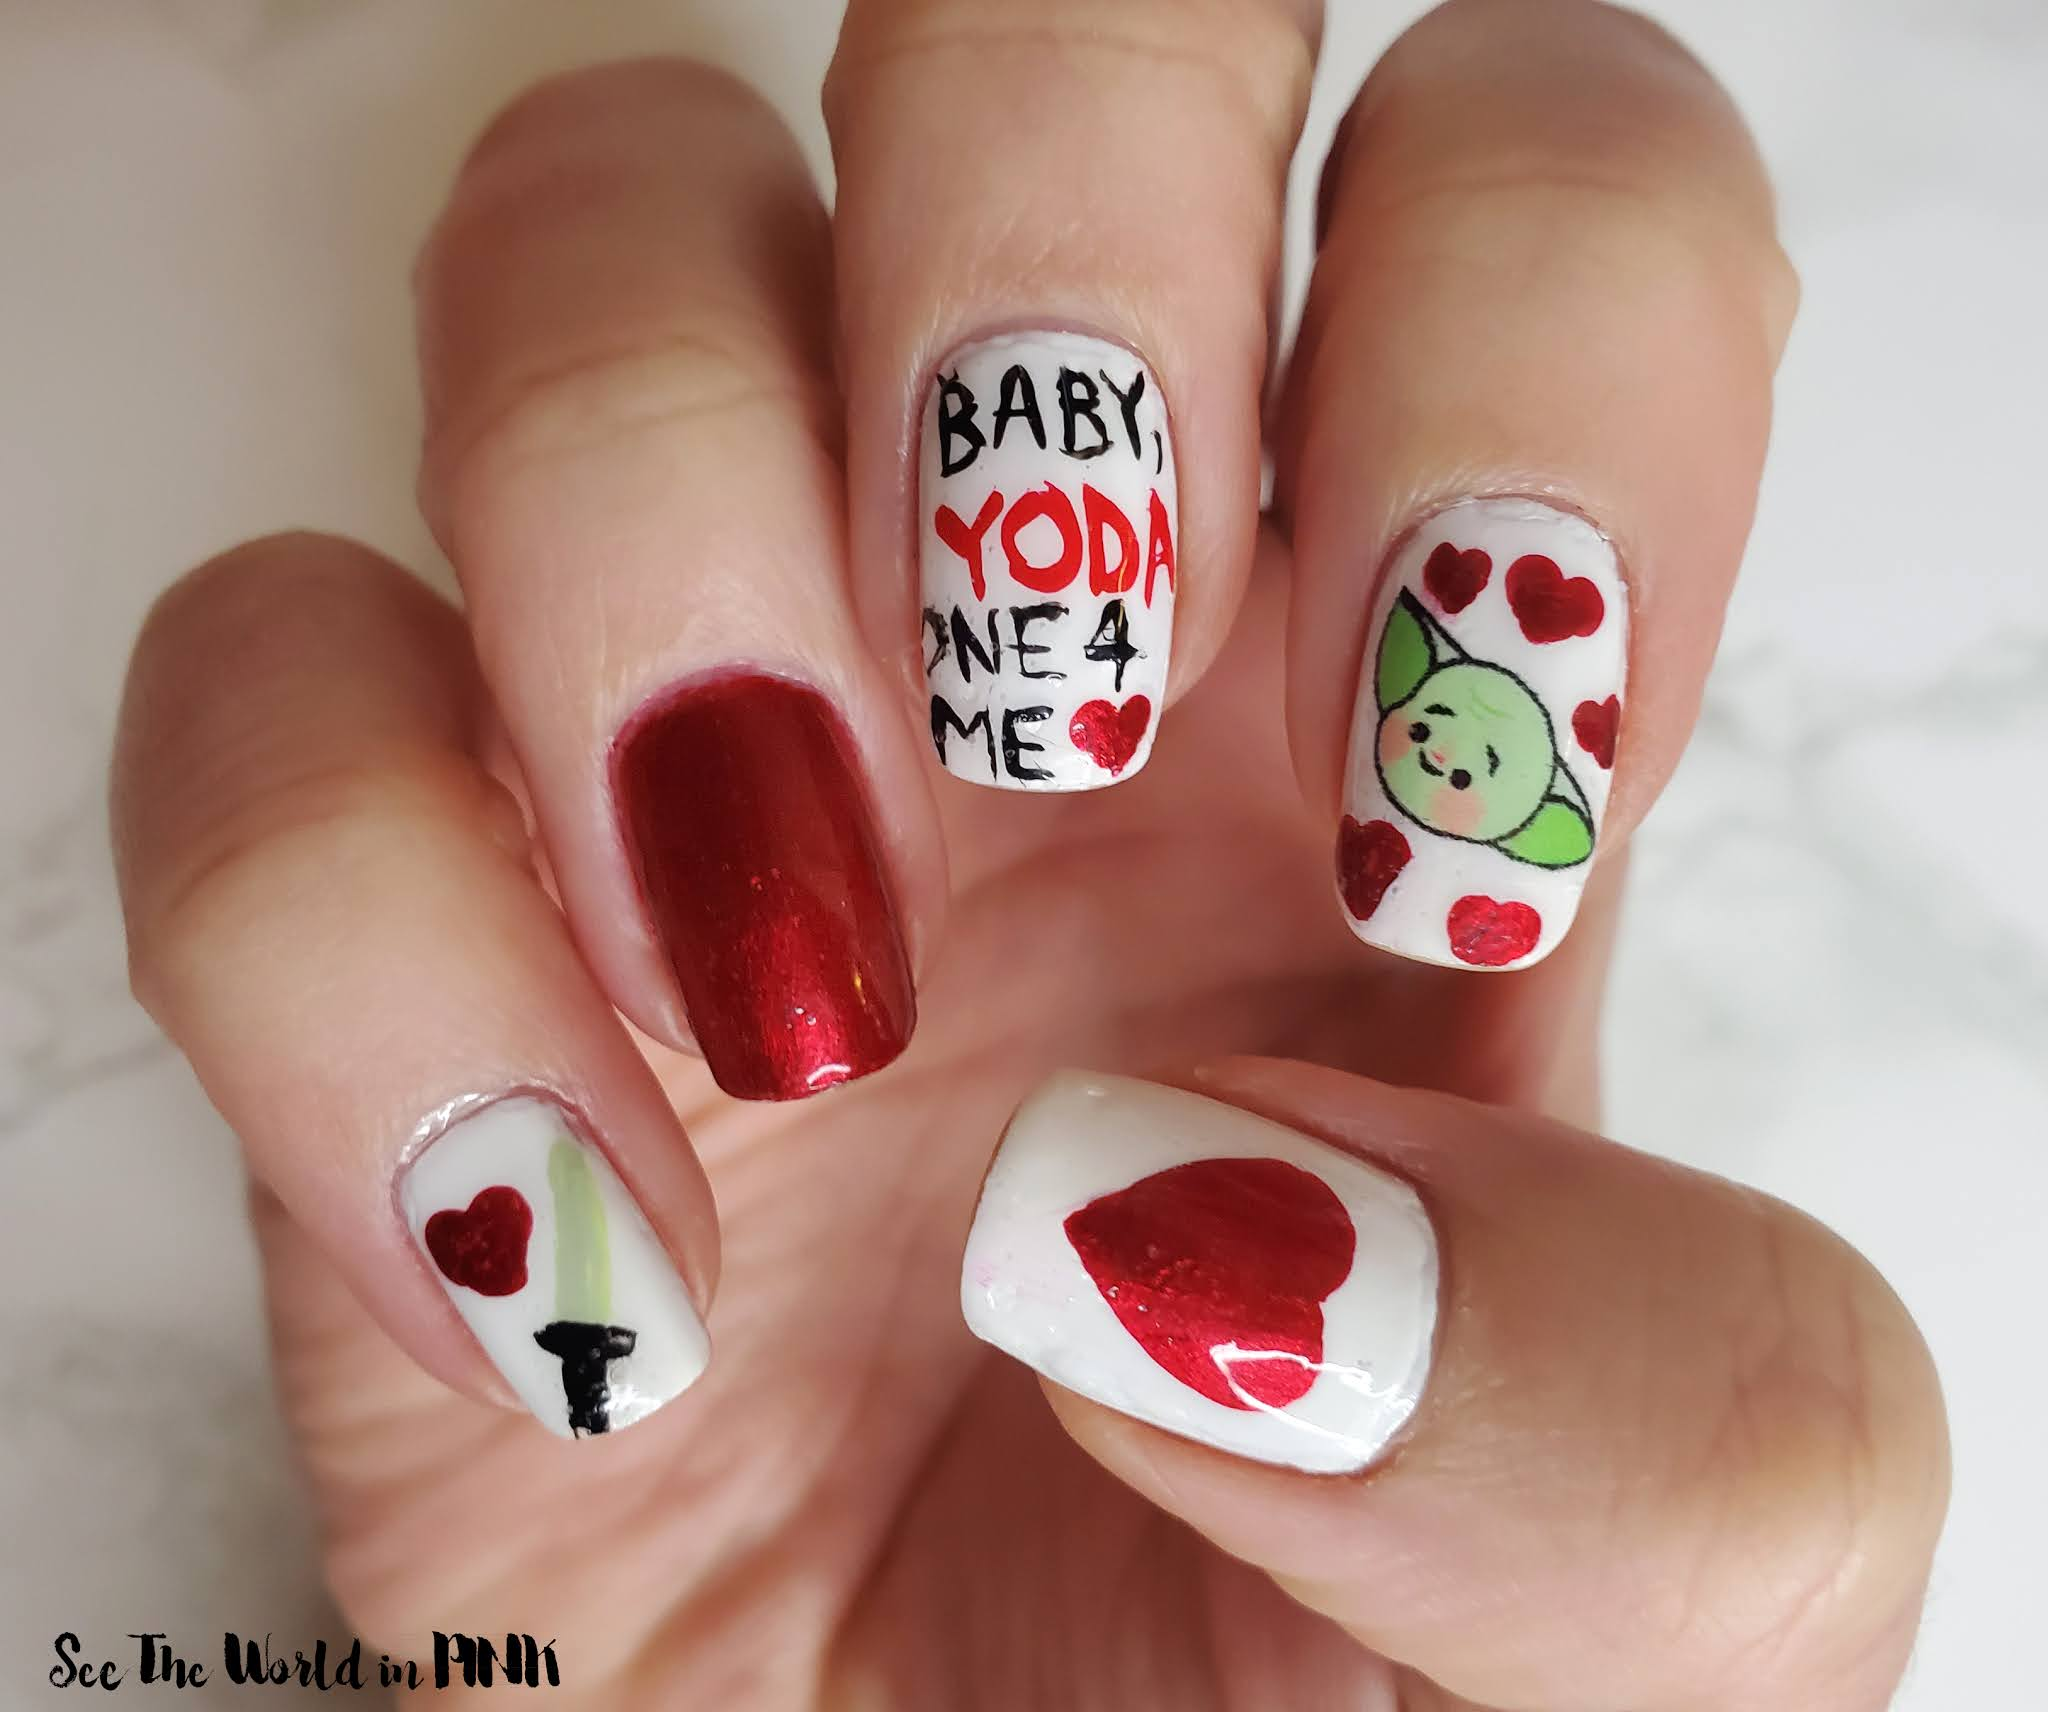 Manicure Monday - Baby, Yoda One For Me Valentine's Day Nails